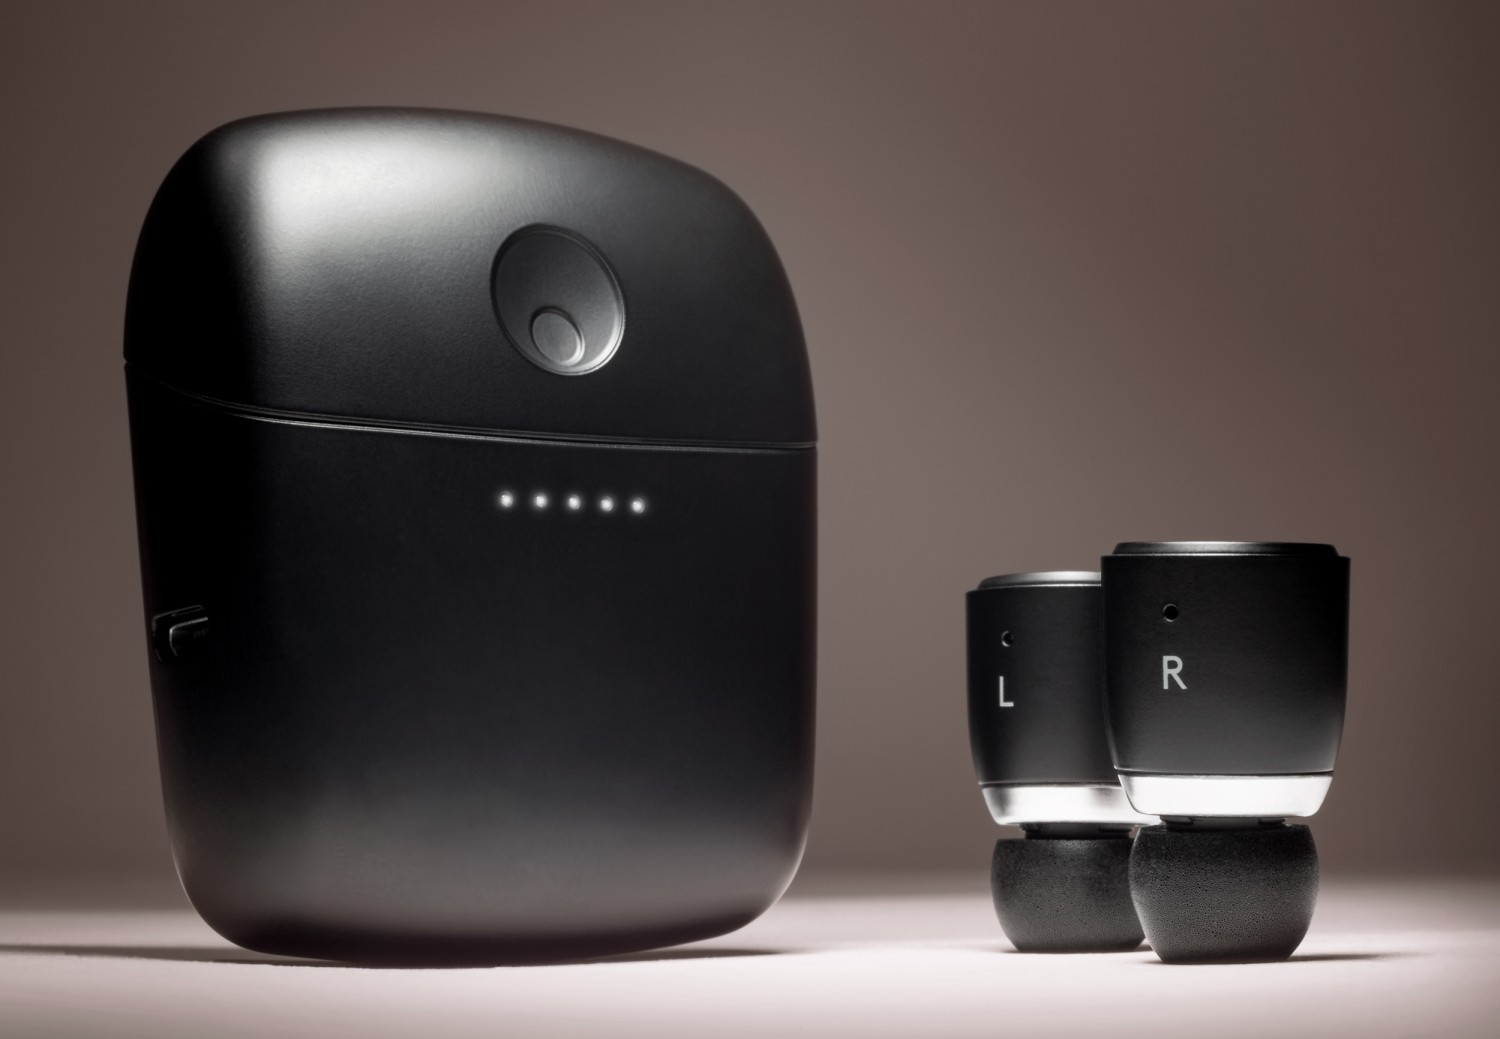 HiFi Melomania 1: Erster True-Wireless-In-Ear-Kopfhörer von Cambridge Audio - News, Bild 1